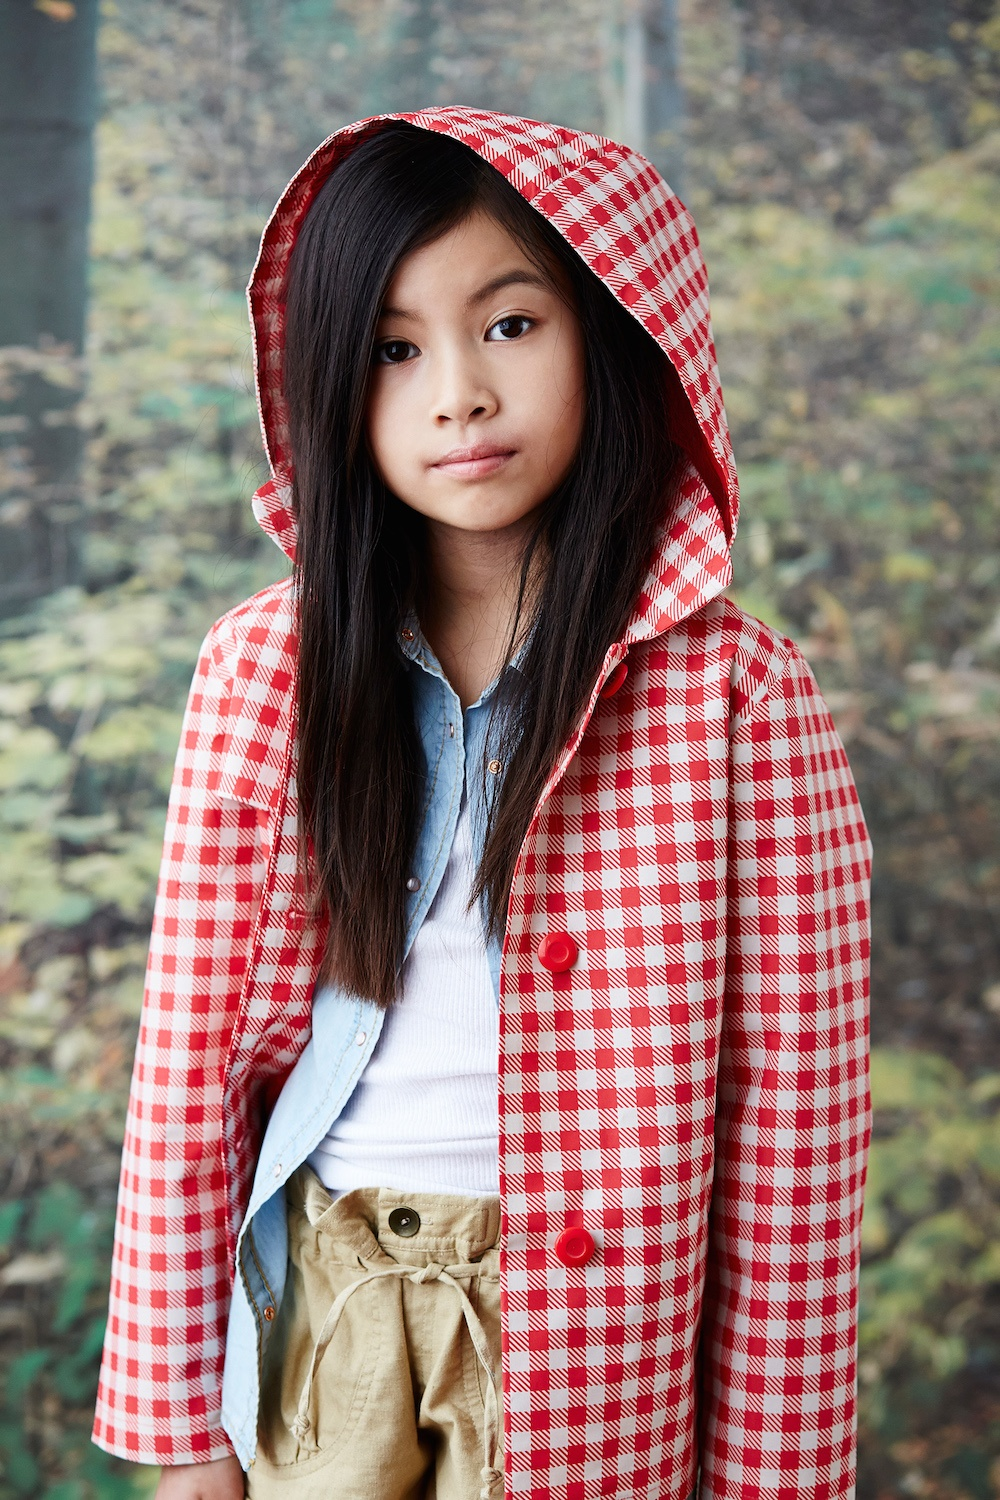 Little-girl-red-white-jacket-hoodie.jpg